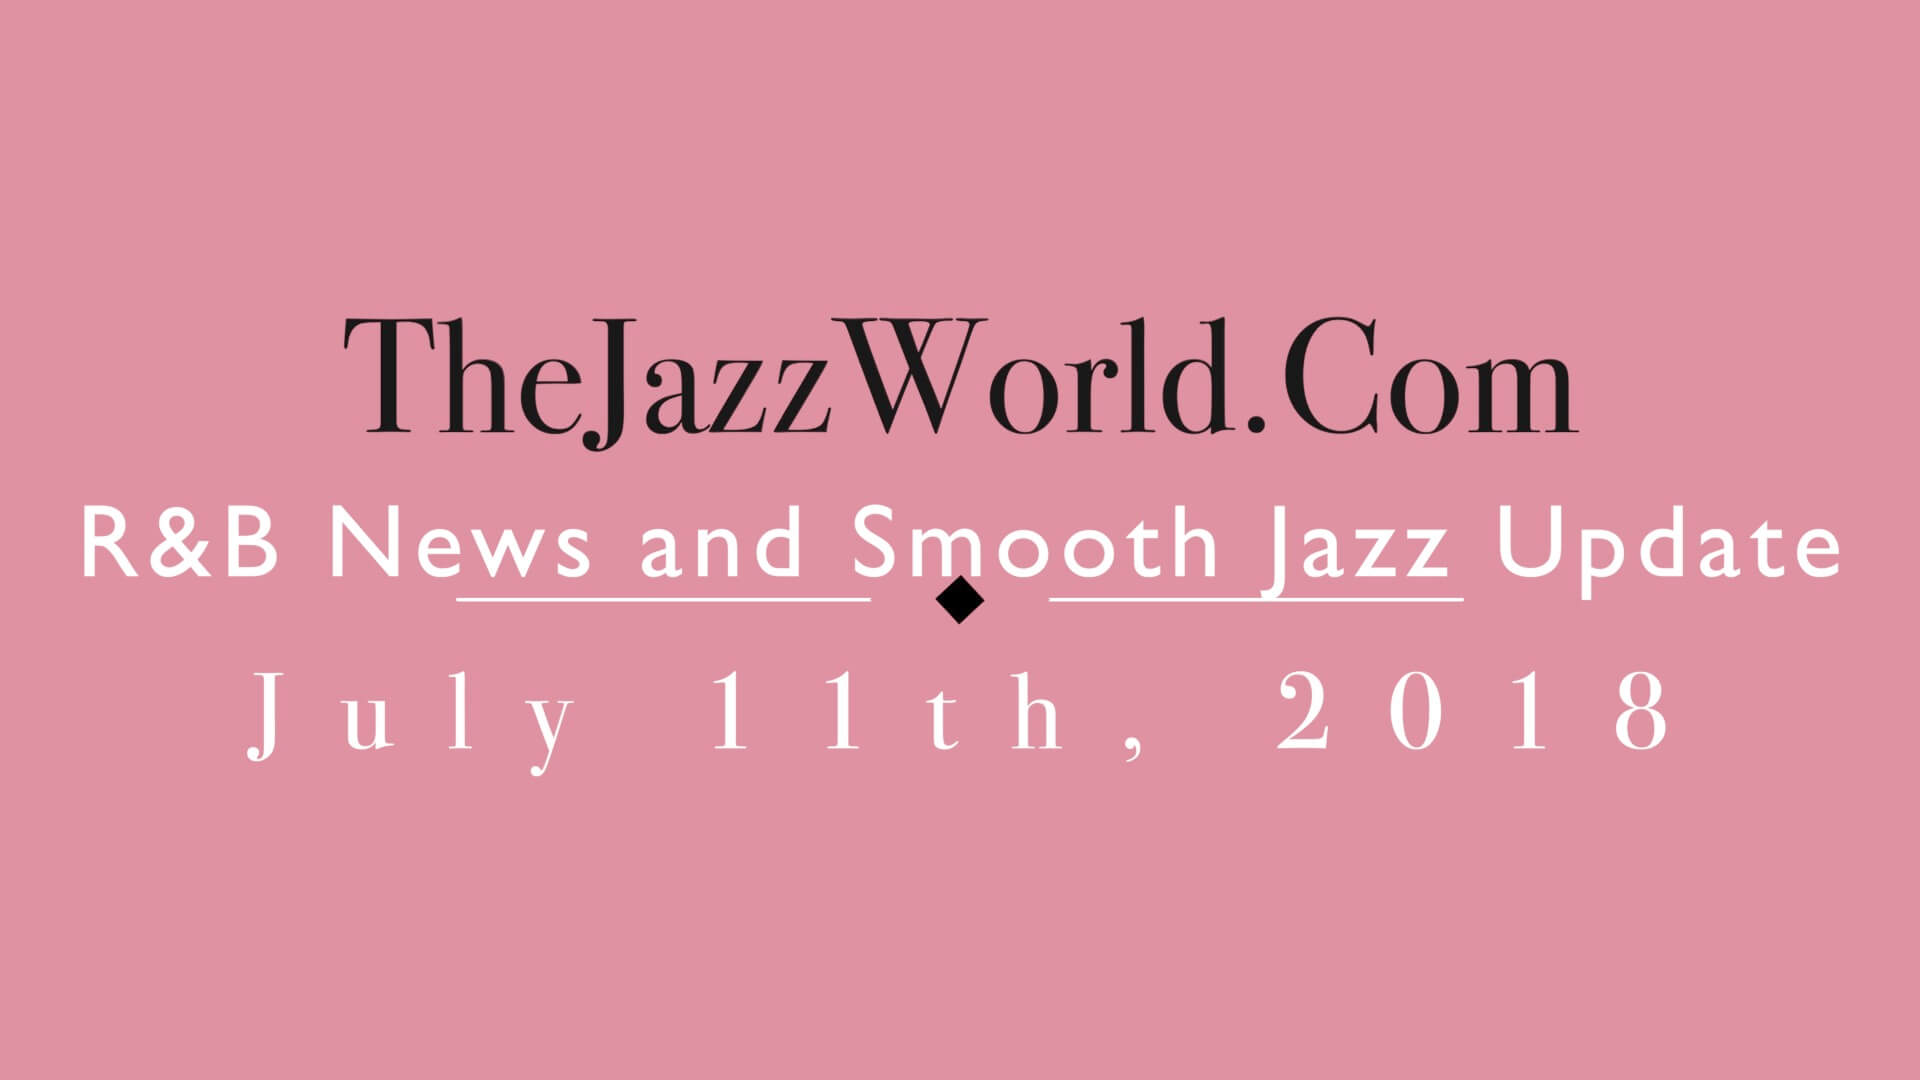 Latest R&B News and Smooth Jazz Update July 11th